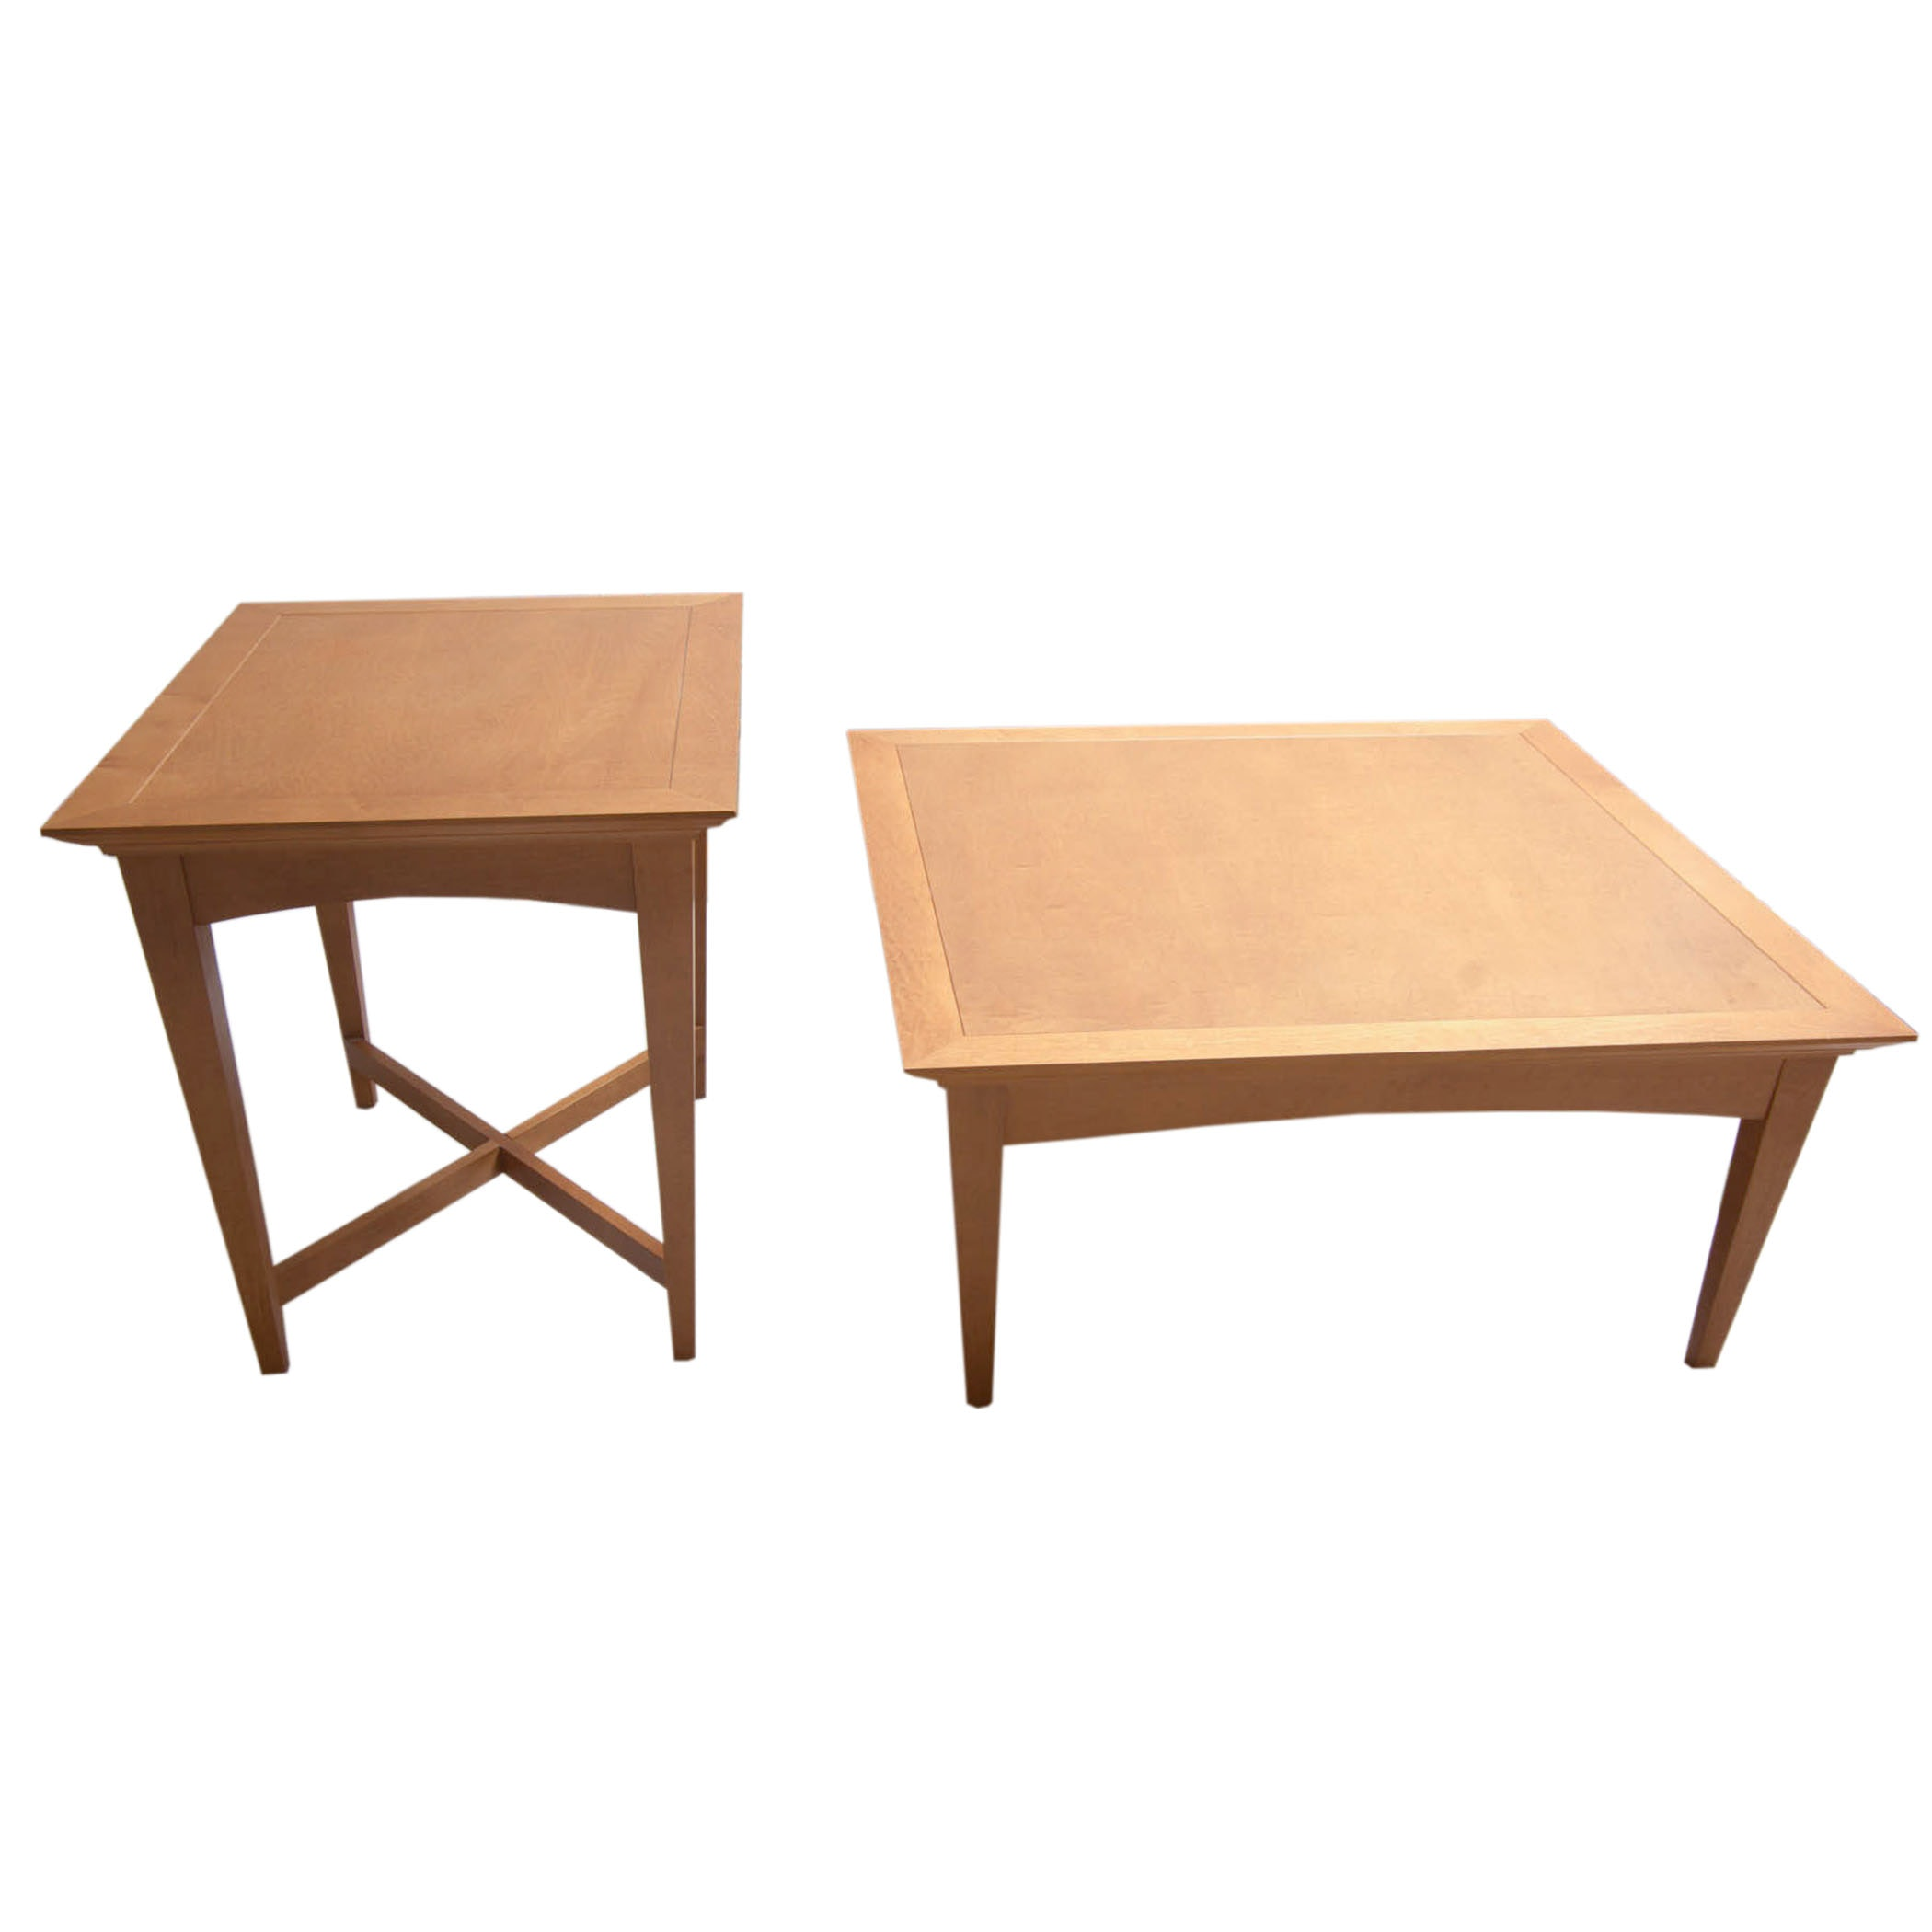 Contemporary Oak Coffee Table and Side Table